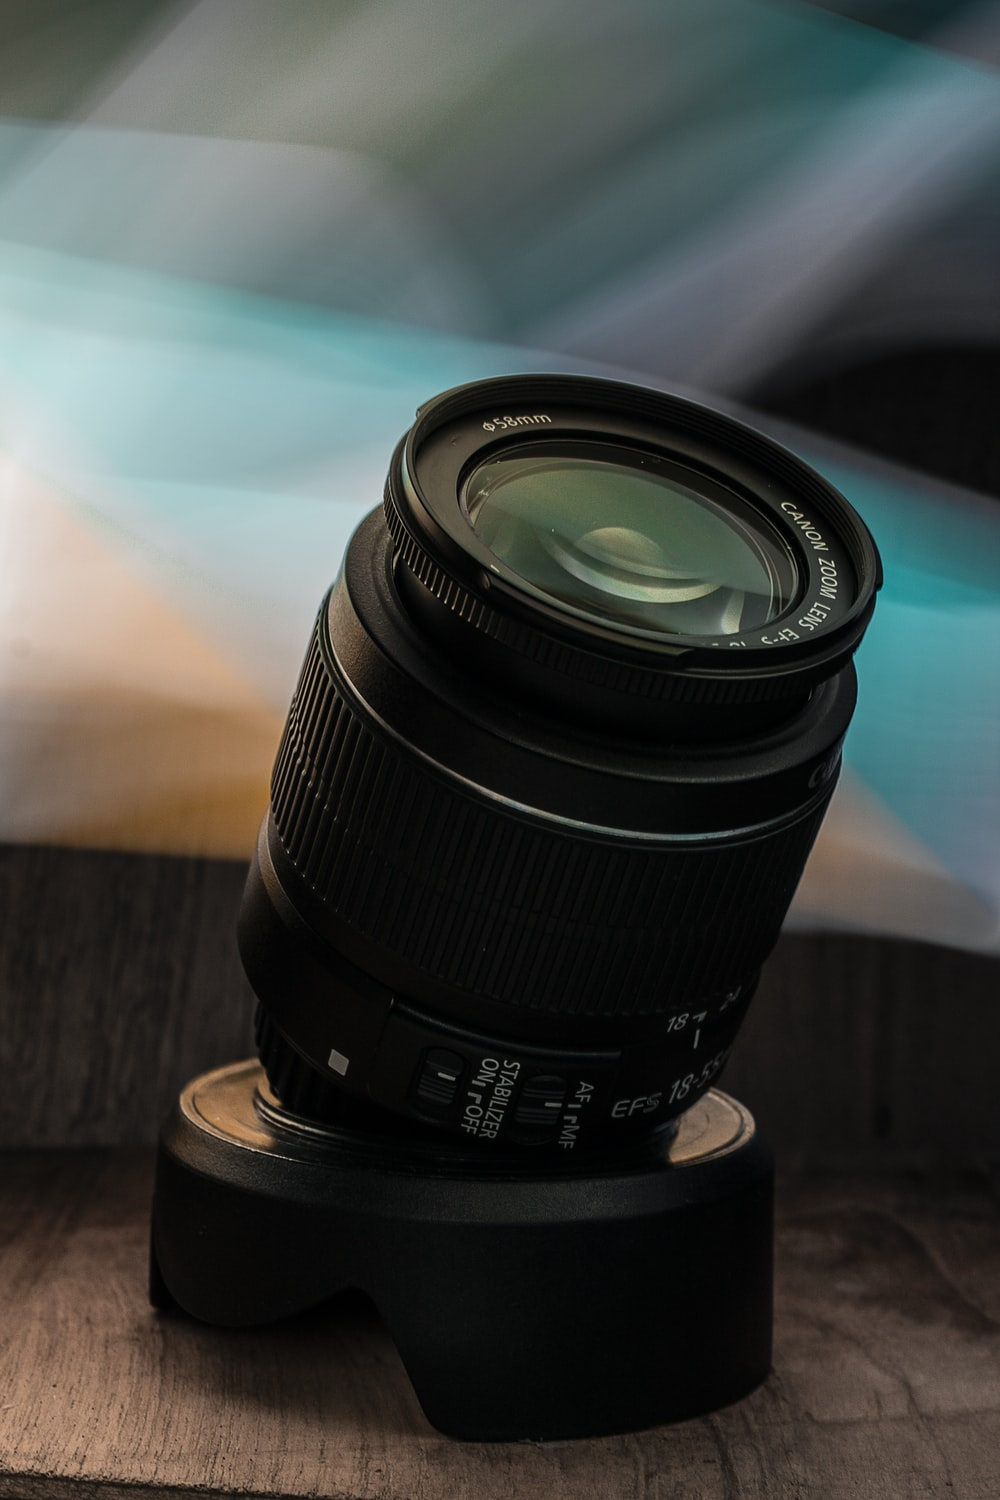 black camera lens on brown wooden table